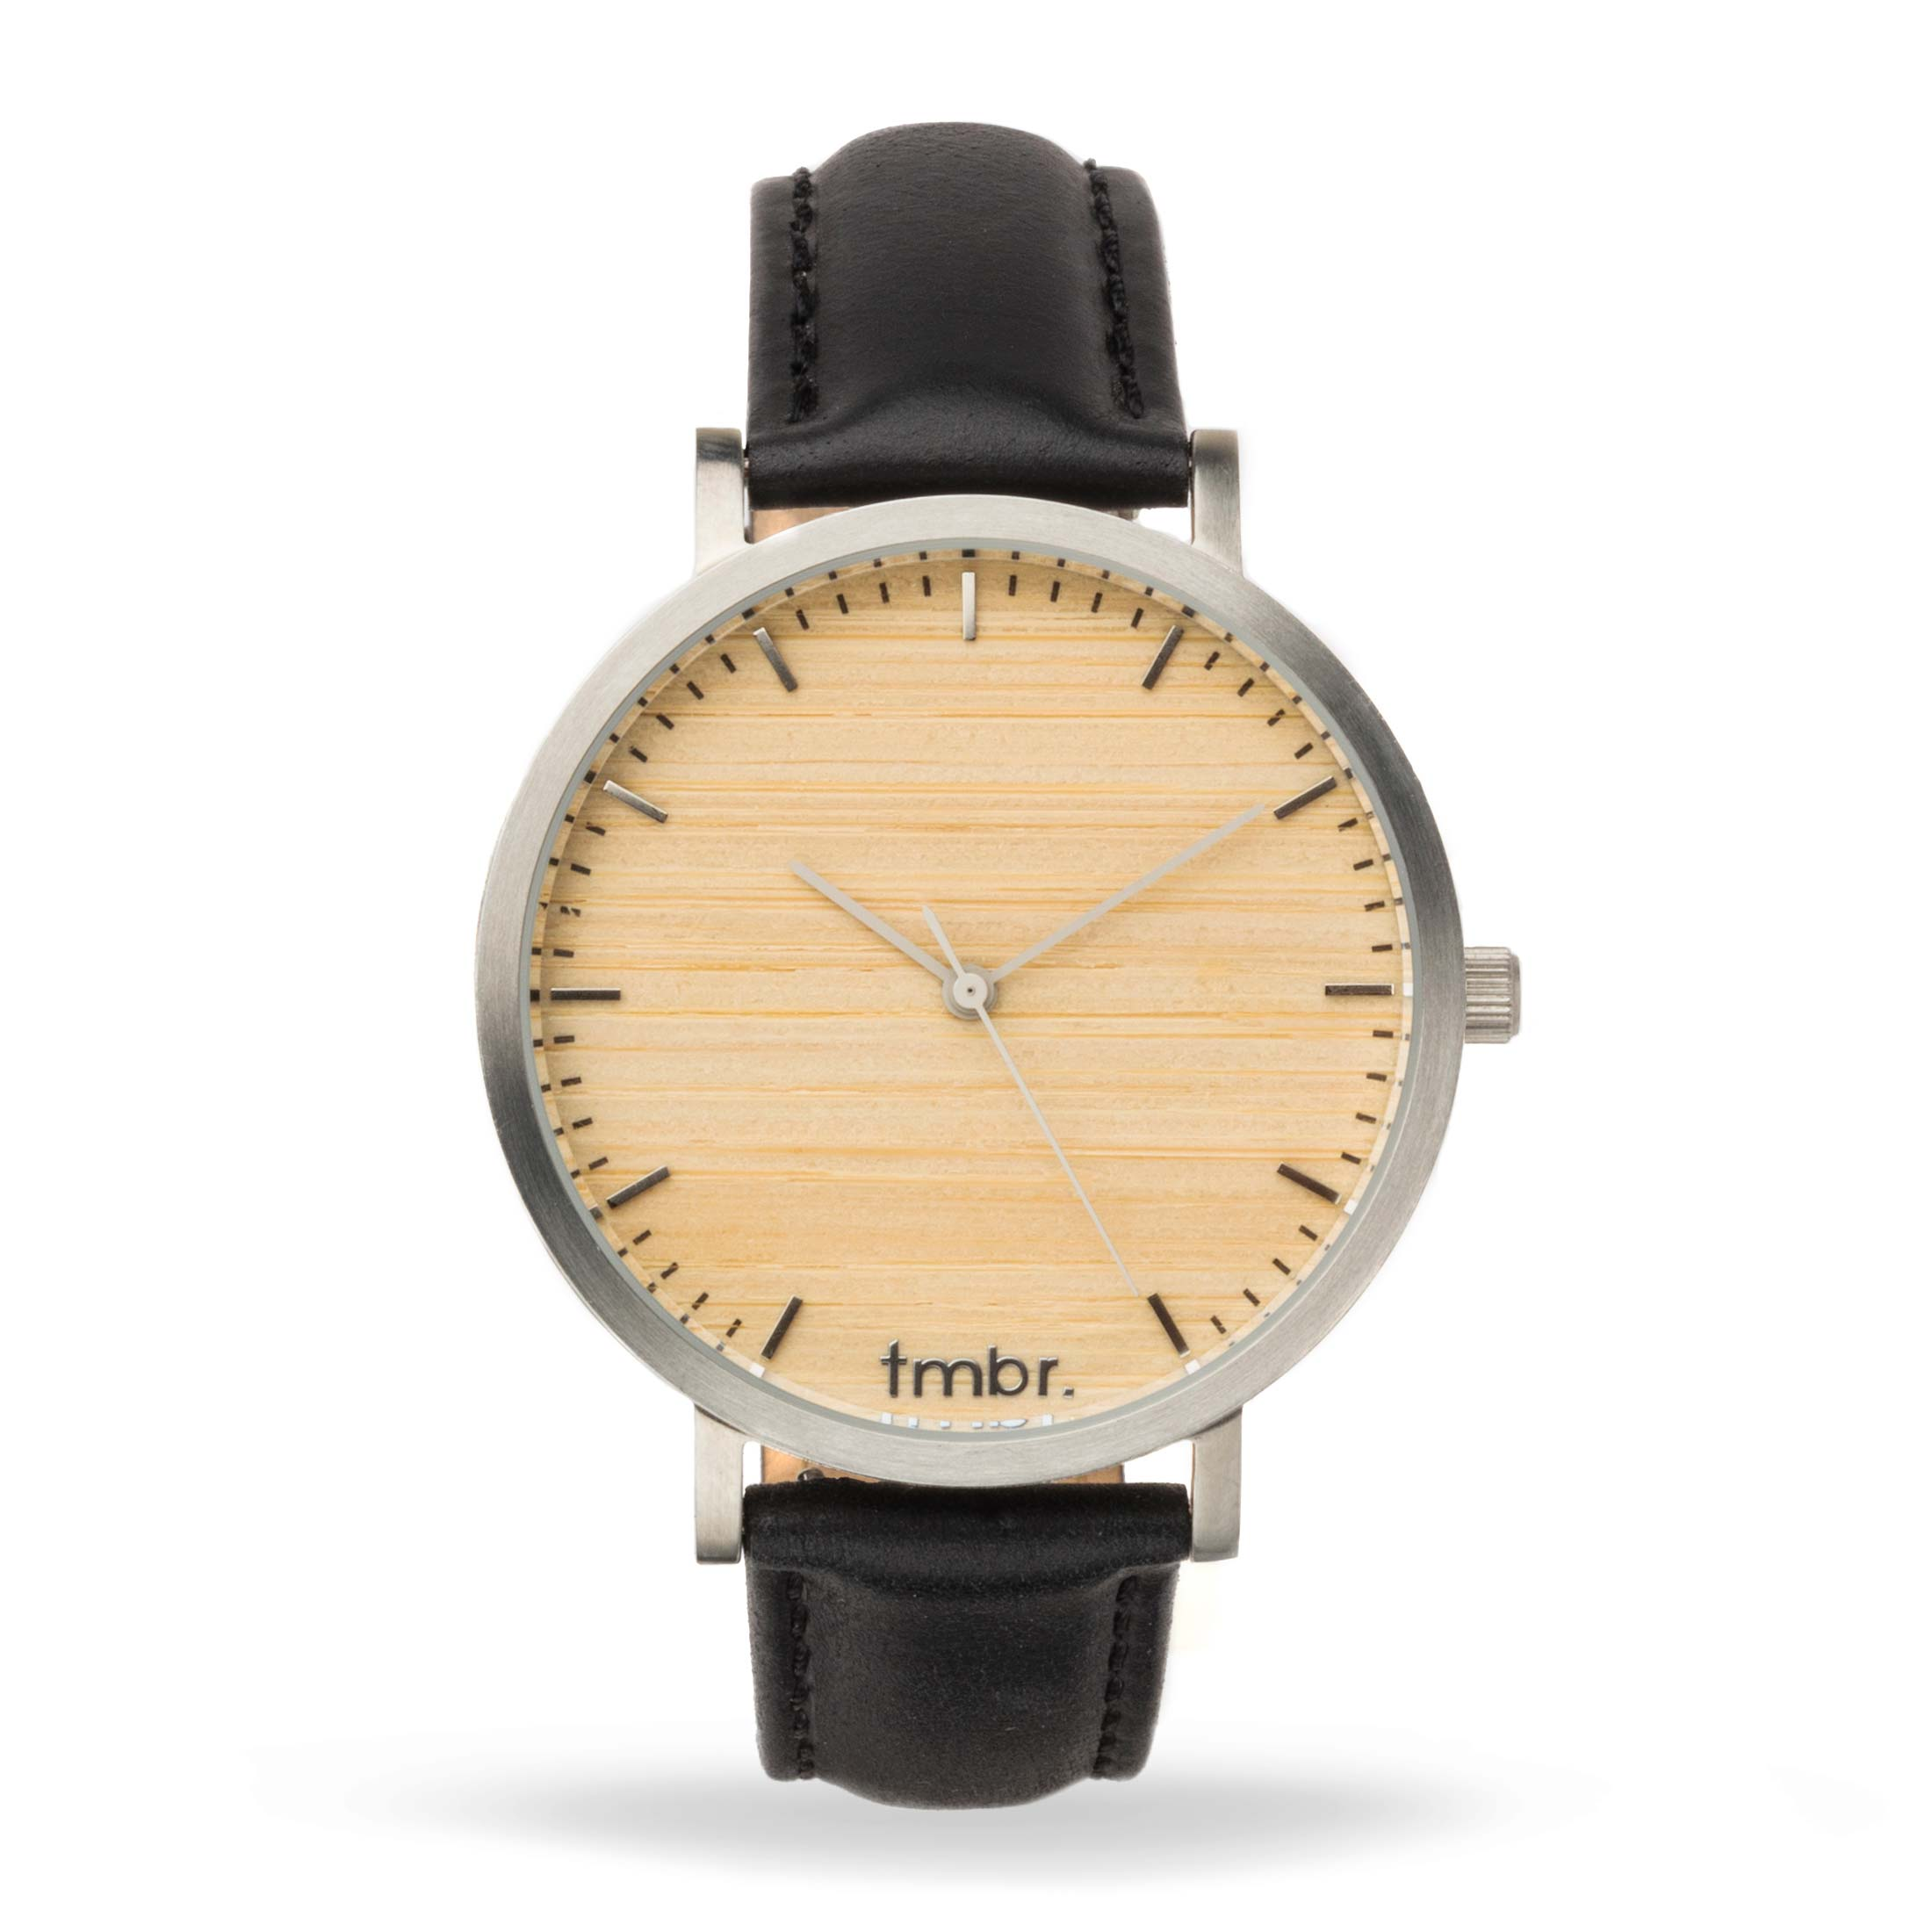 Helm Minimalist Wooden Personalized Watch Silver Cottonwood